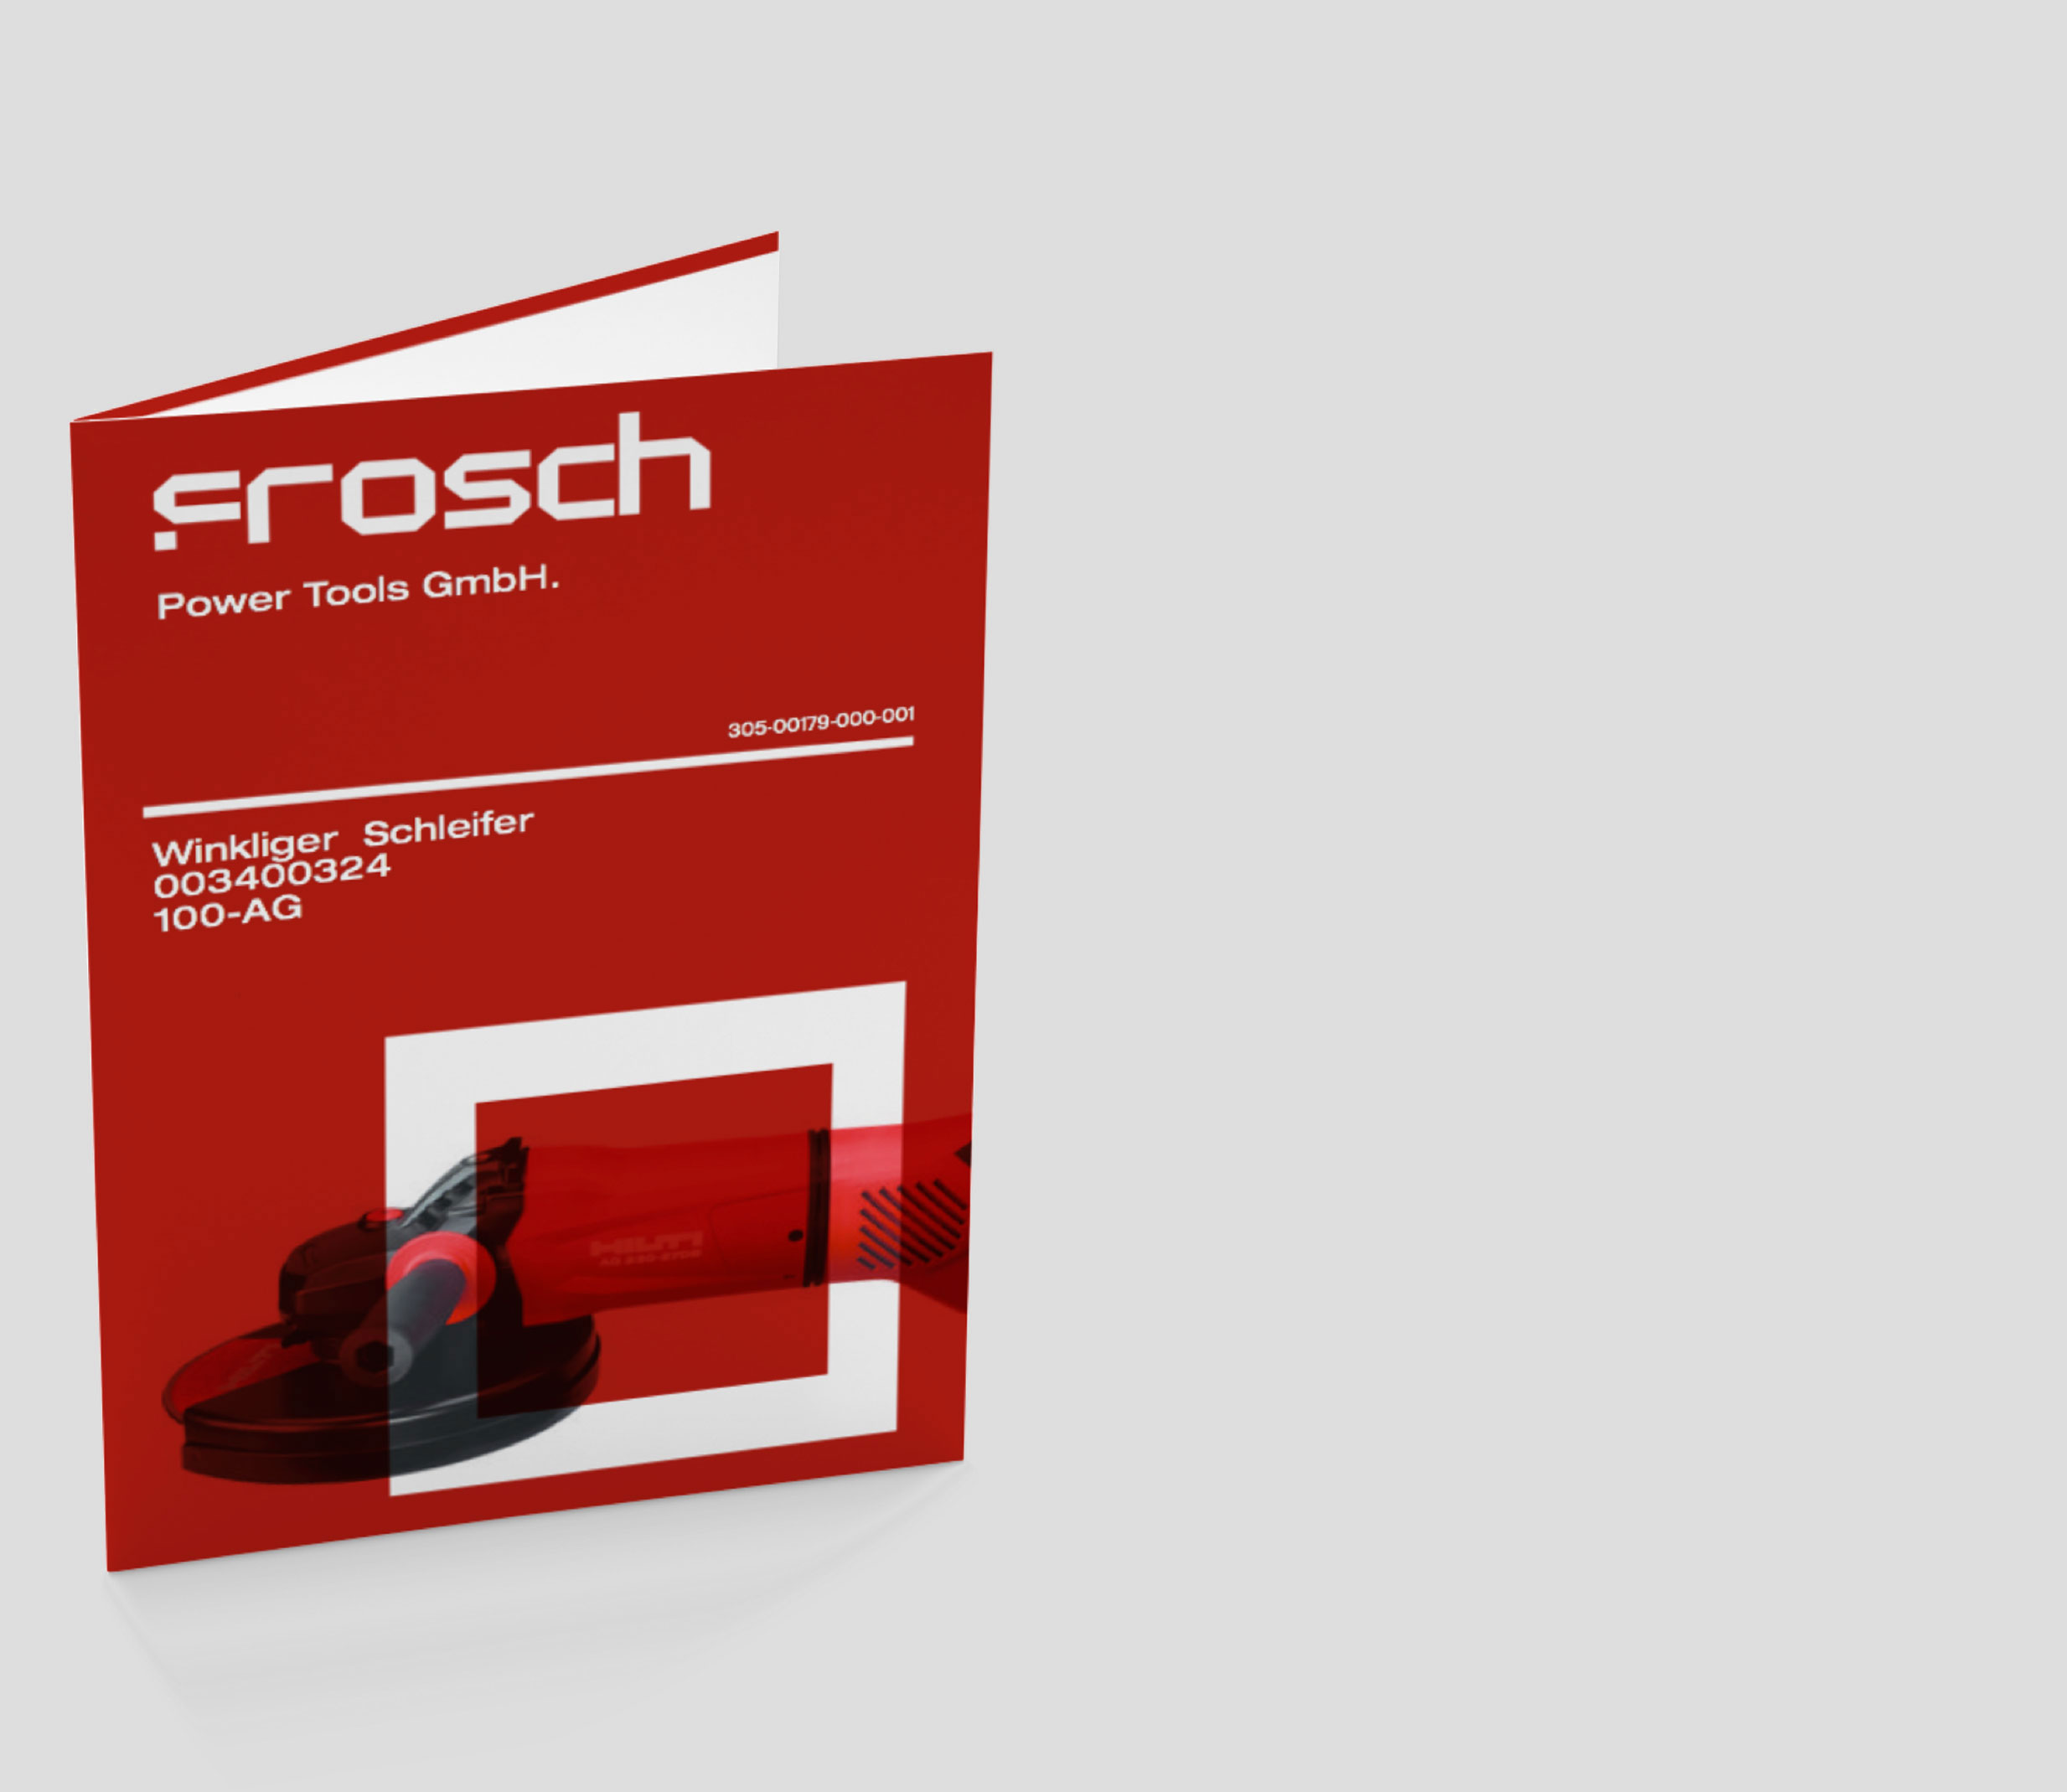 Catalogue Cover for Frosch Power Tools Corporate Identity